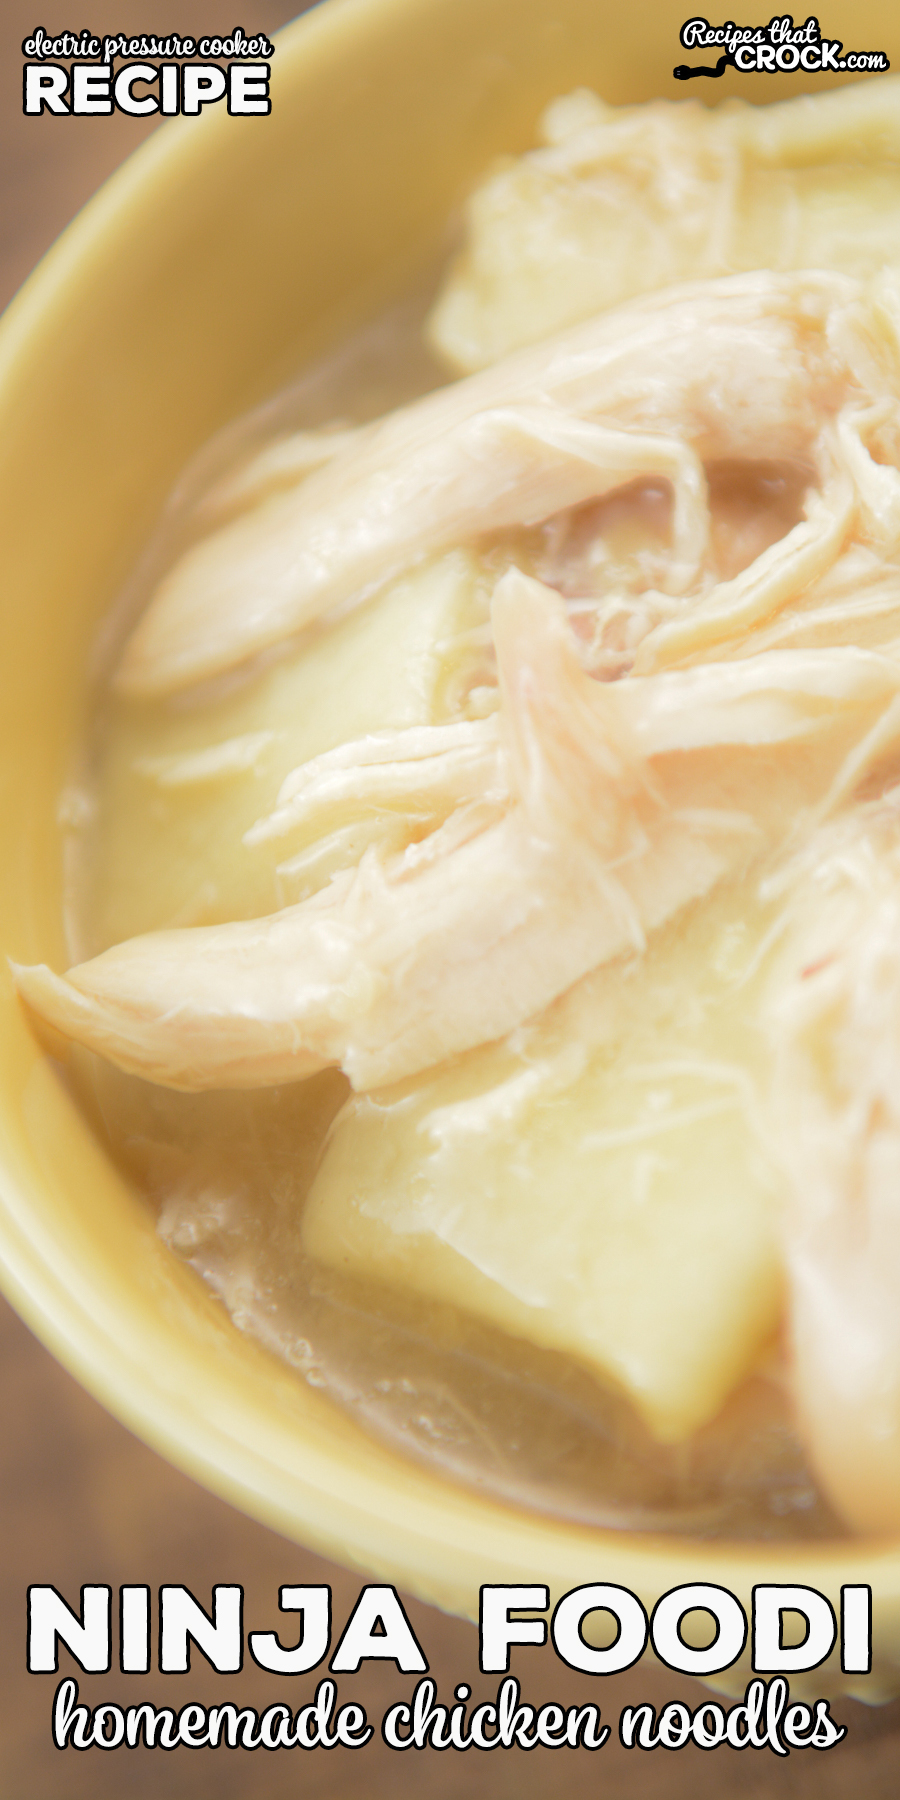 Our Electric Pressure Cooker Homemade Chicken Noodles are an easy way to make the  favorite old fashioned recipe in your Ninja Foodi, Instant Pot or other electric pressure cooker.  Easy made from scratch noodles and tender chicken make this the ultimate comfort food. via @recipescrock